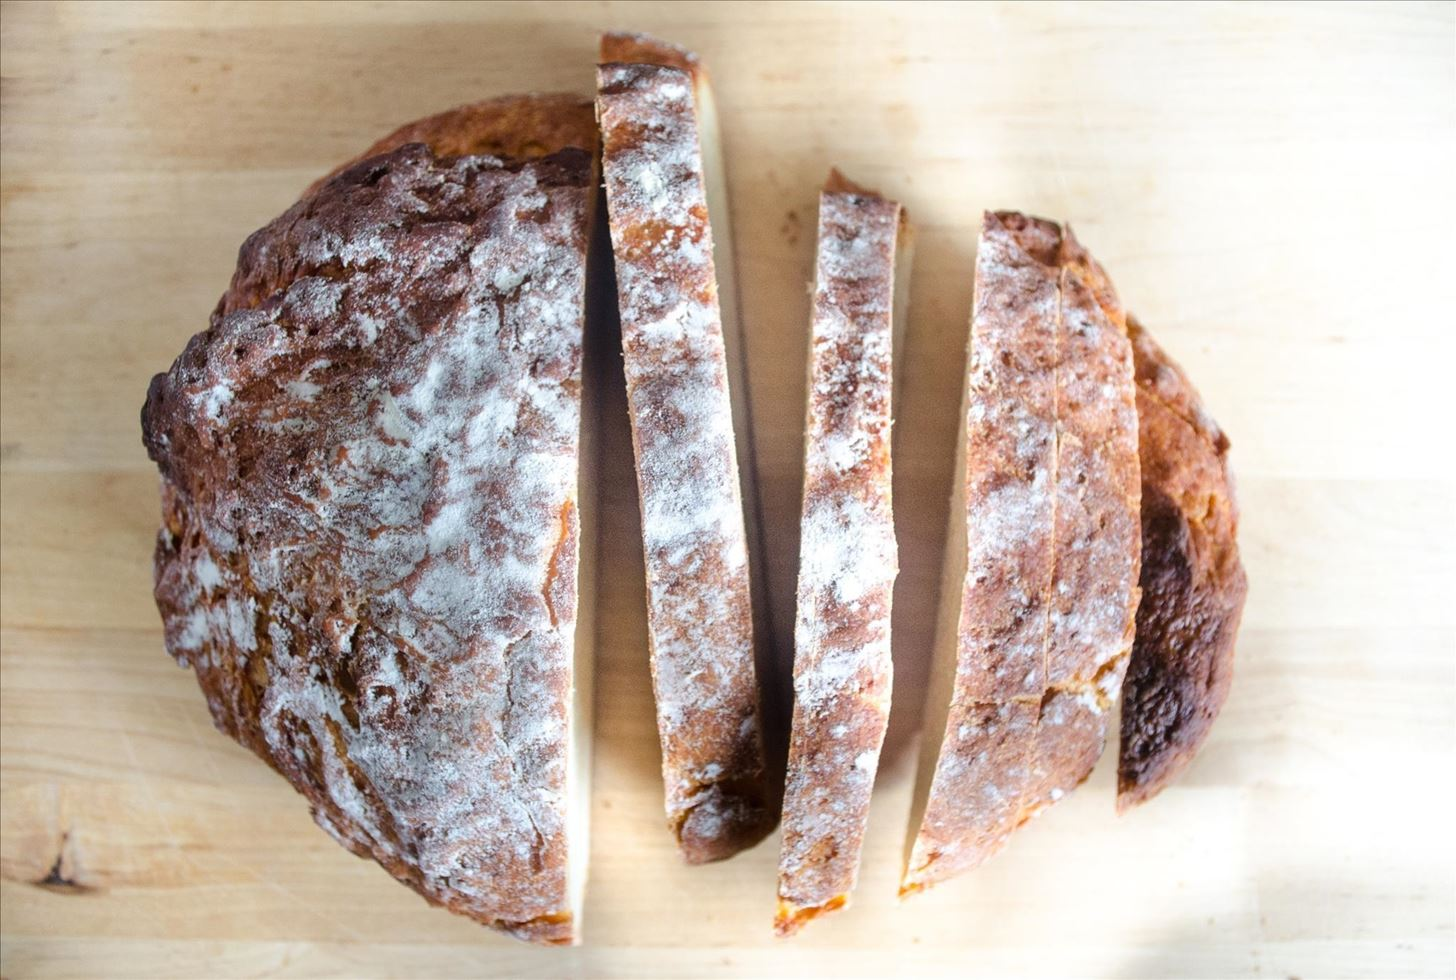 3 Bakers' Tricks to Getting a Perfect Crispy Bread Crust at Home